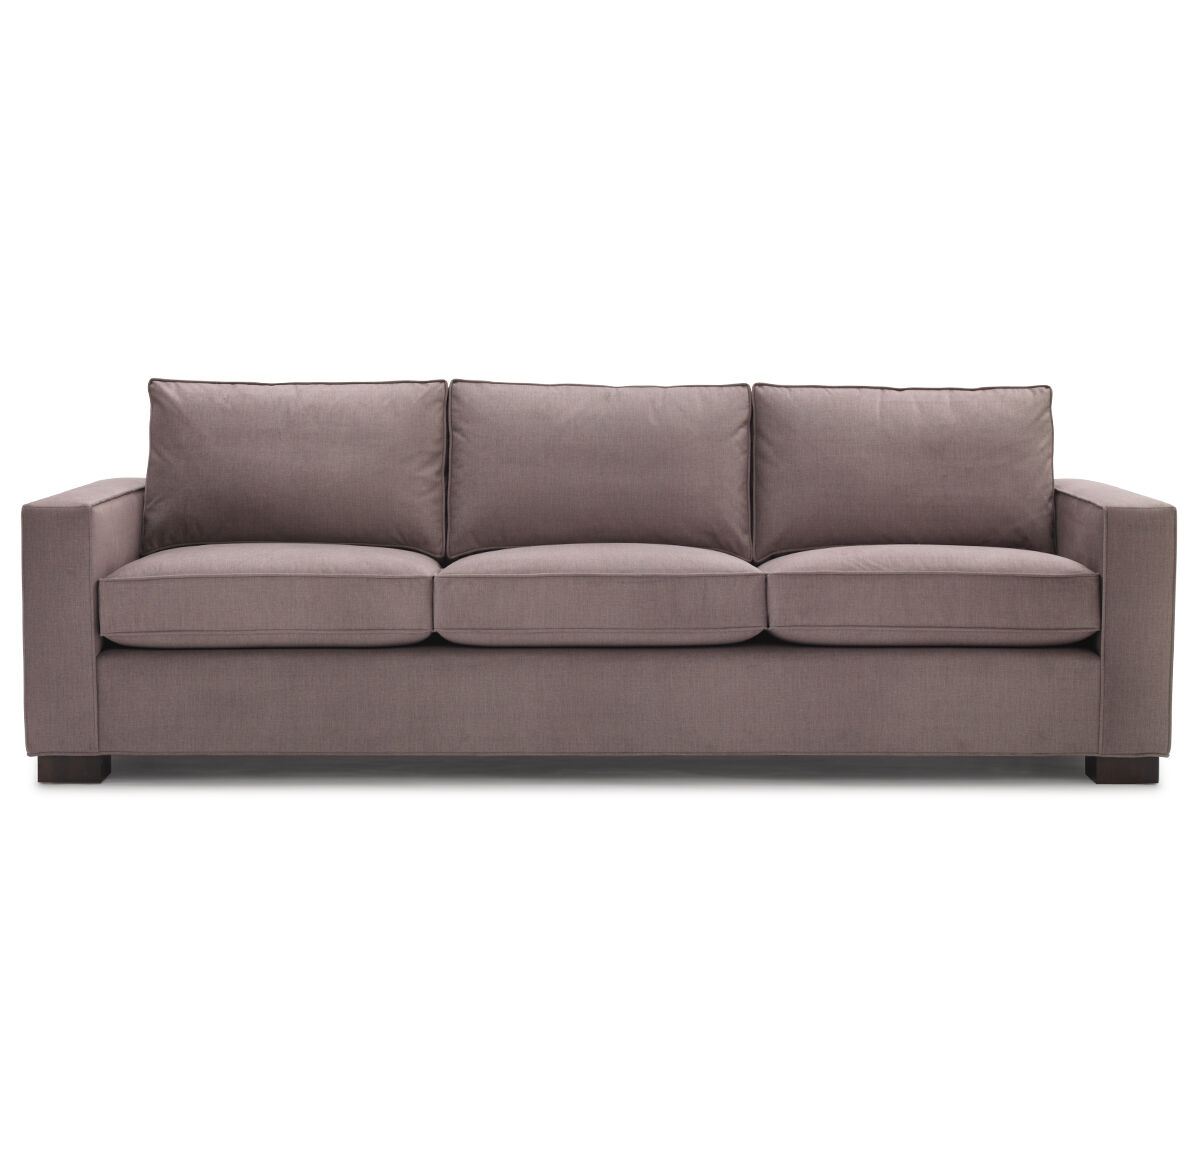 Couch Upholstery Fourways Carson Sofa